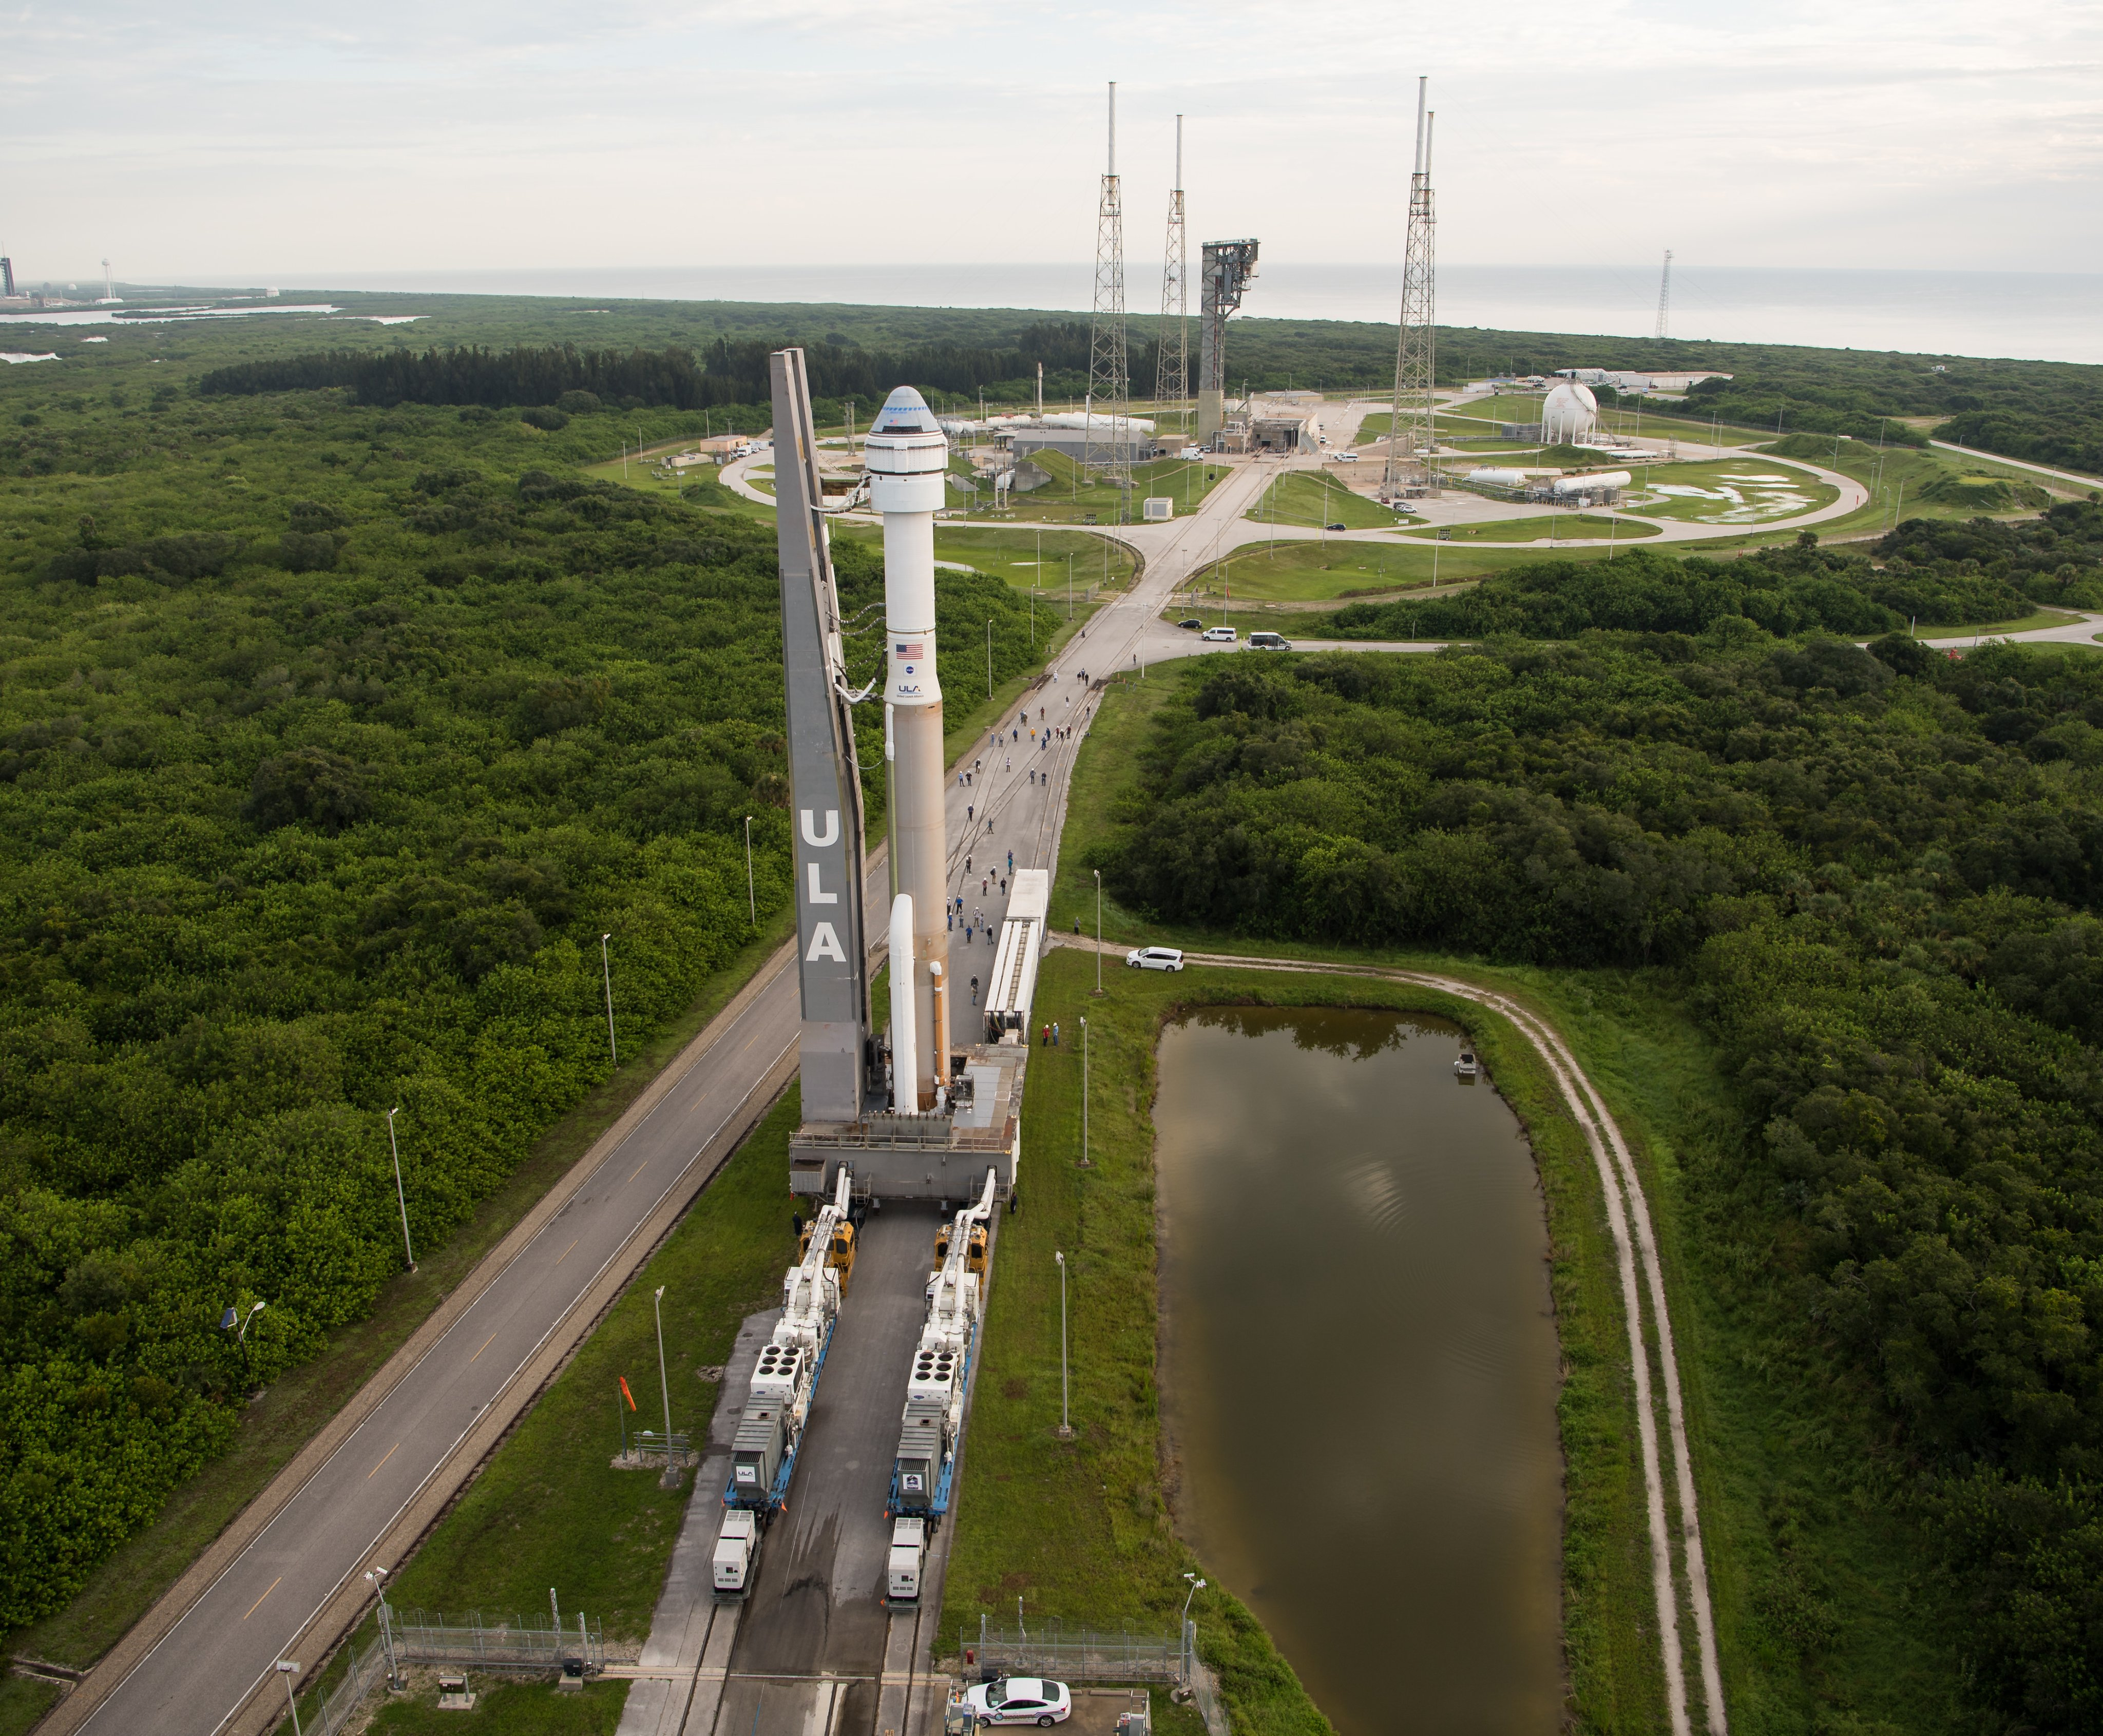 Boeing's Starliner capsule and its United Launch Alliance Atlas V rocket roll out to their launch pad at Cape Canaveral Space Force Station on Aug. 2, 2021.